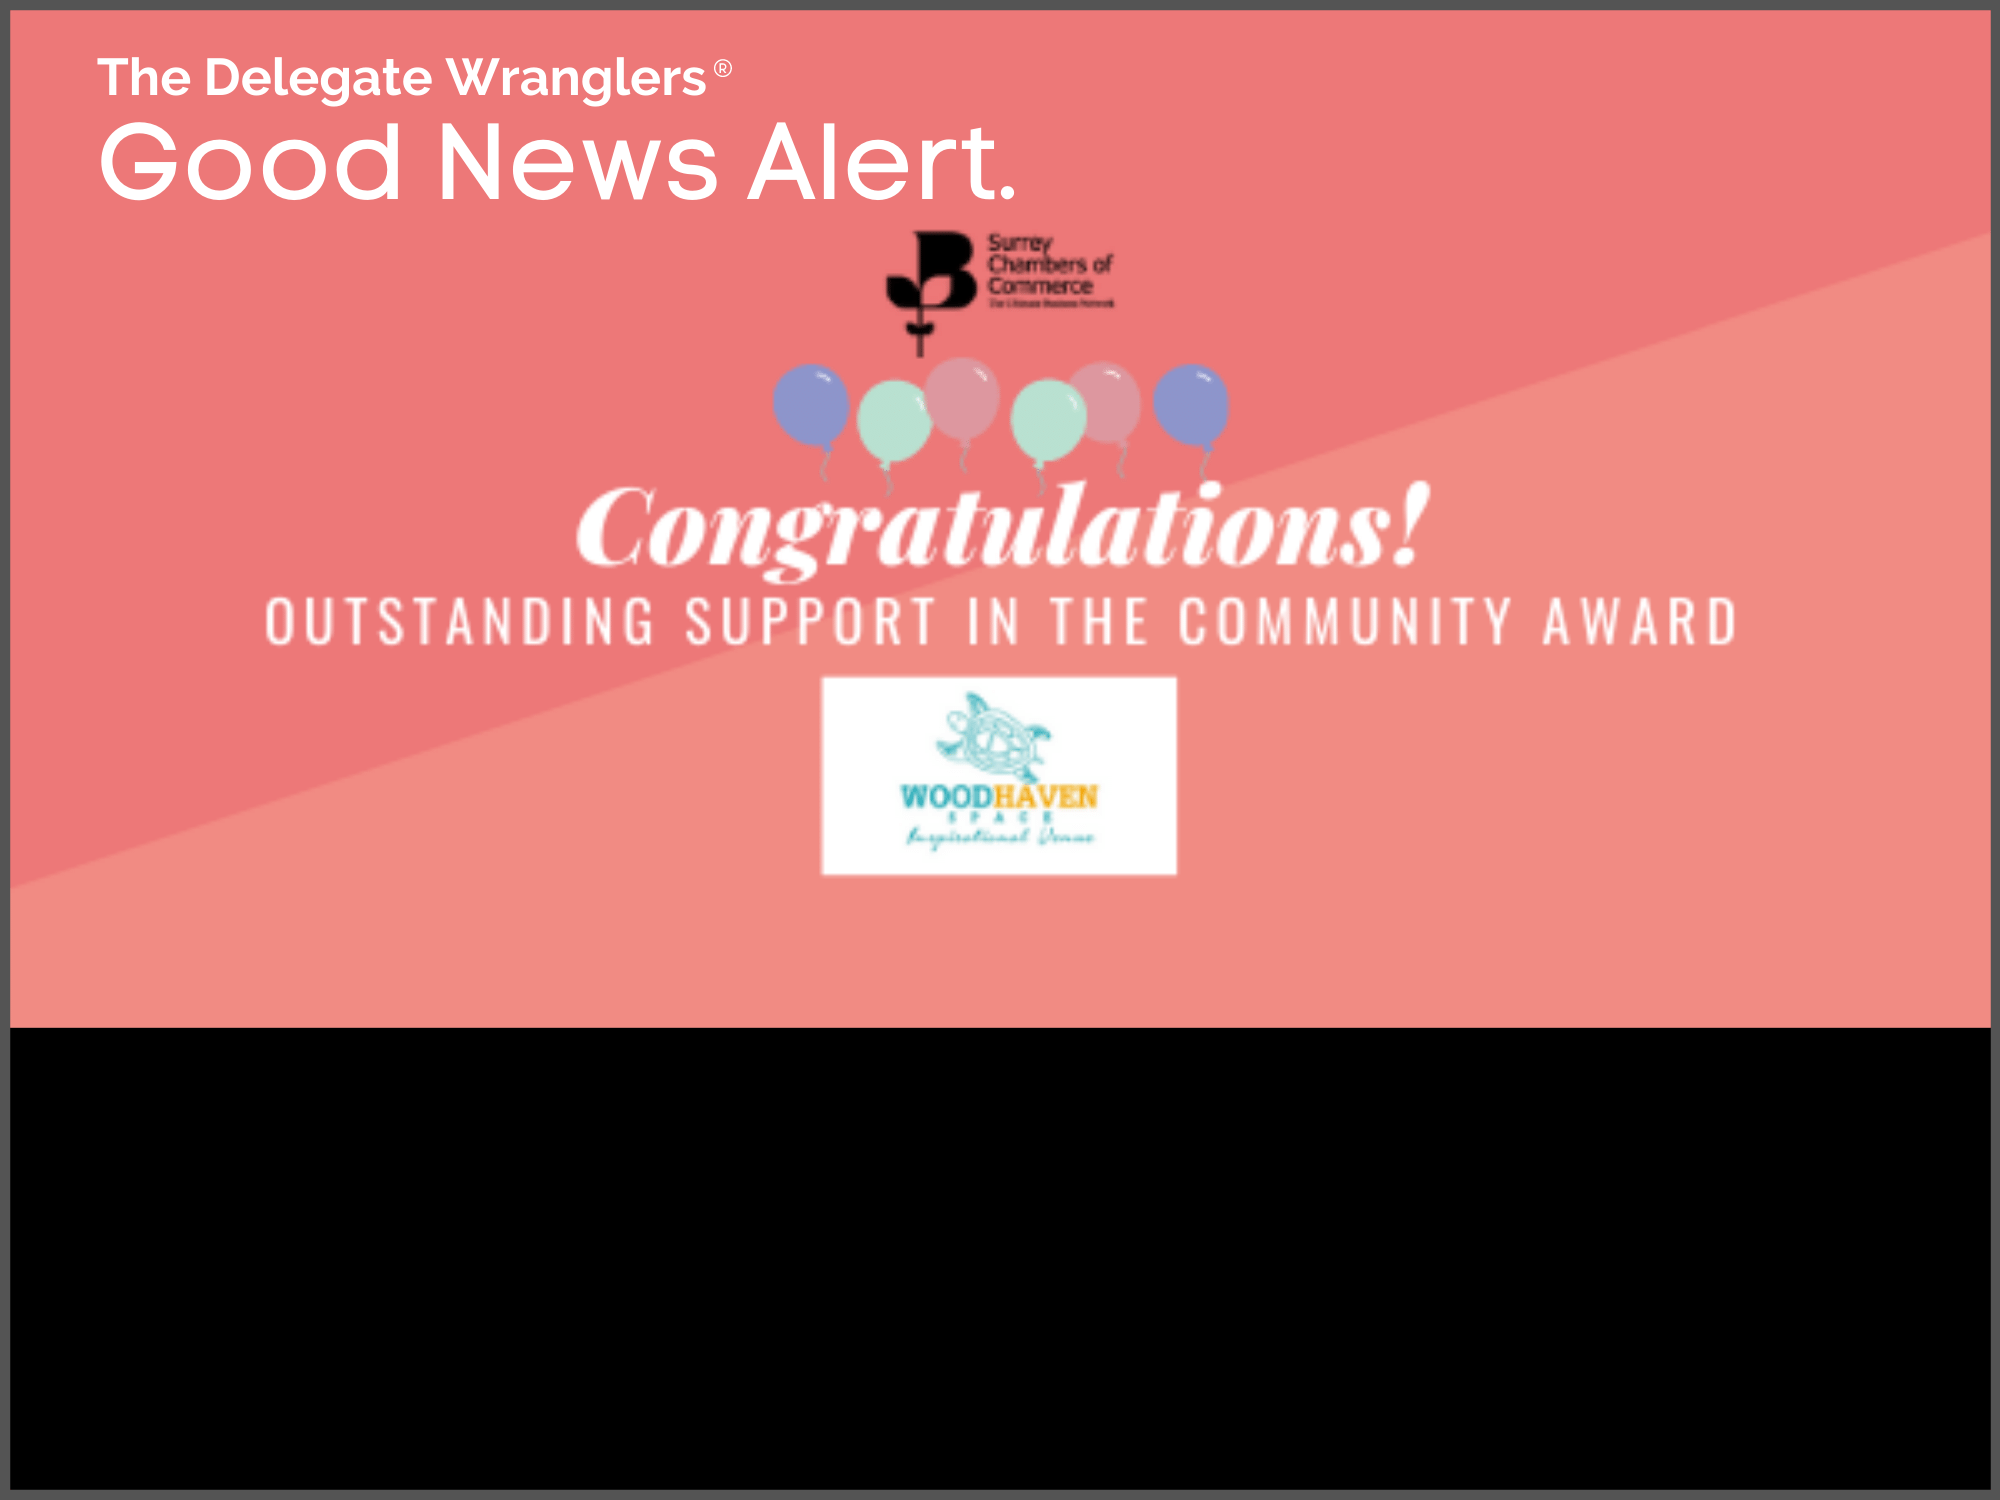 Woodhaven Space chosen for 'Outstanding Support in The Community Award'